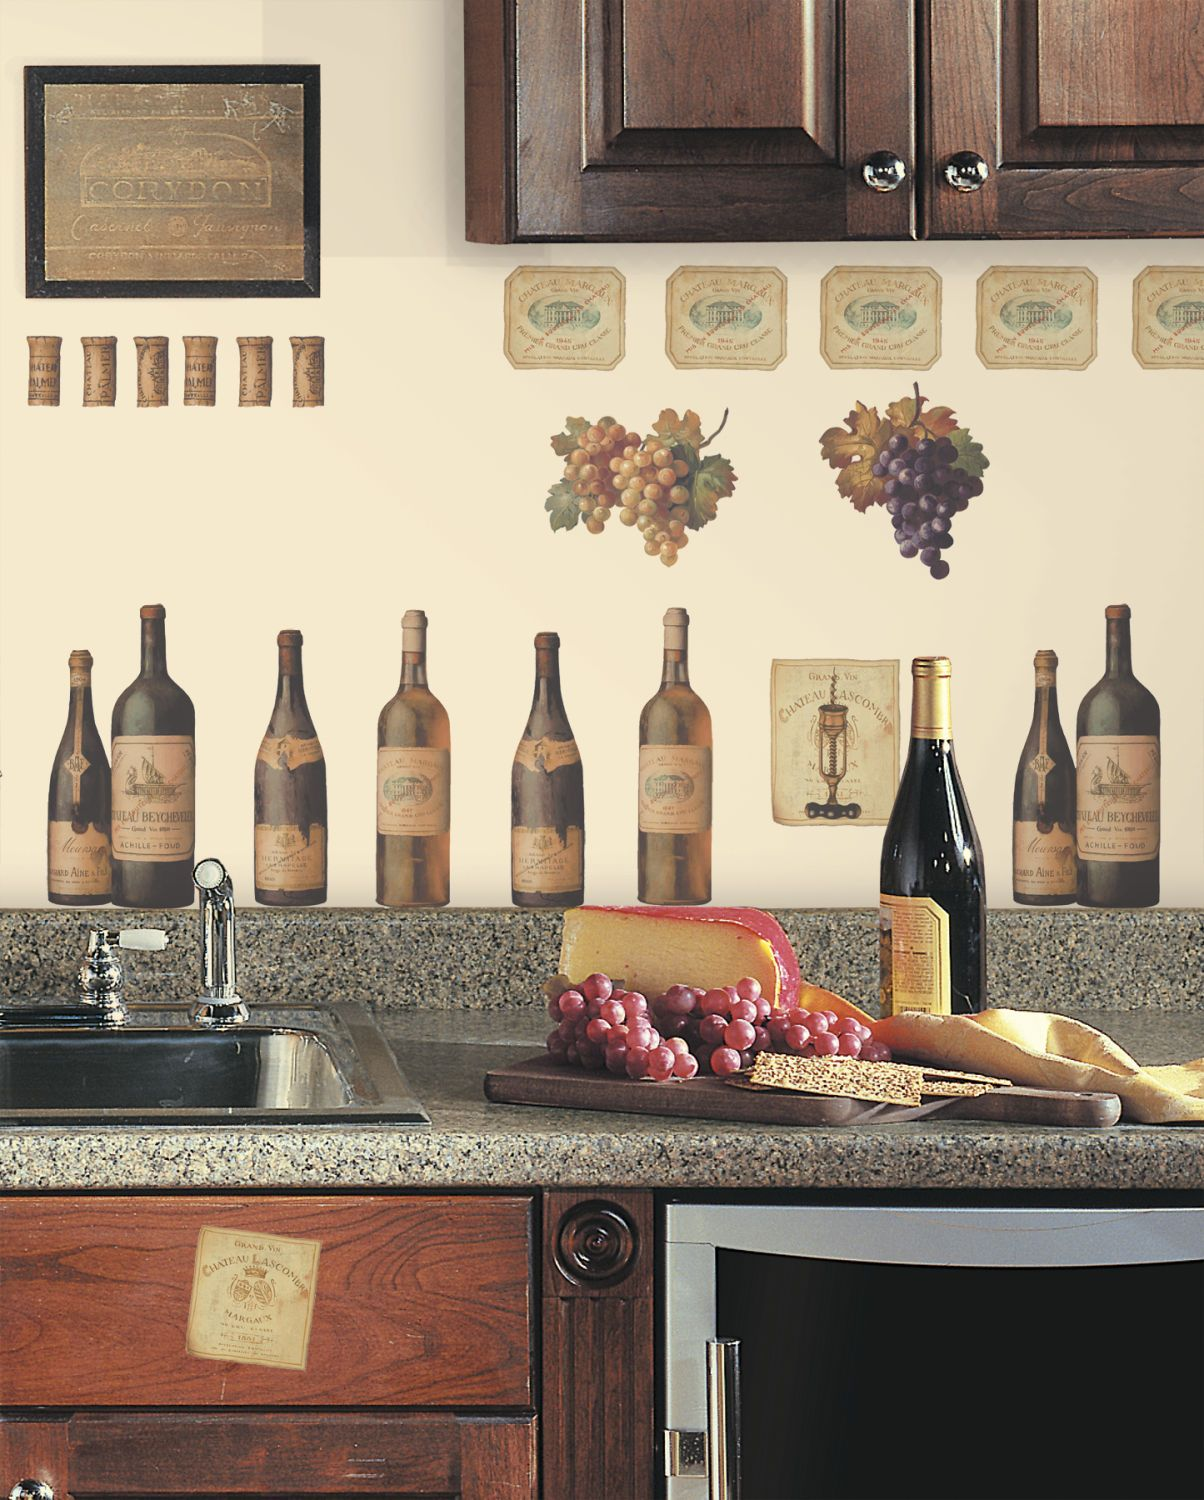 Wine tasting wall decals grapes bottles new stickers kitchen decor decorations 13 99 kitchen themes